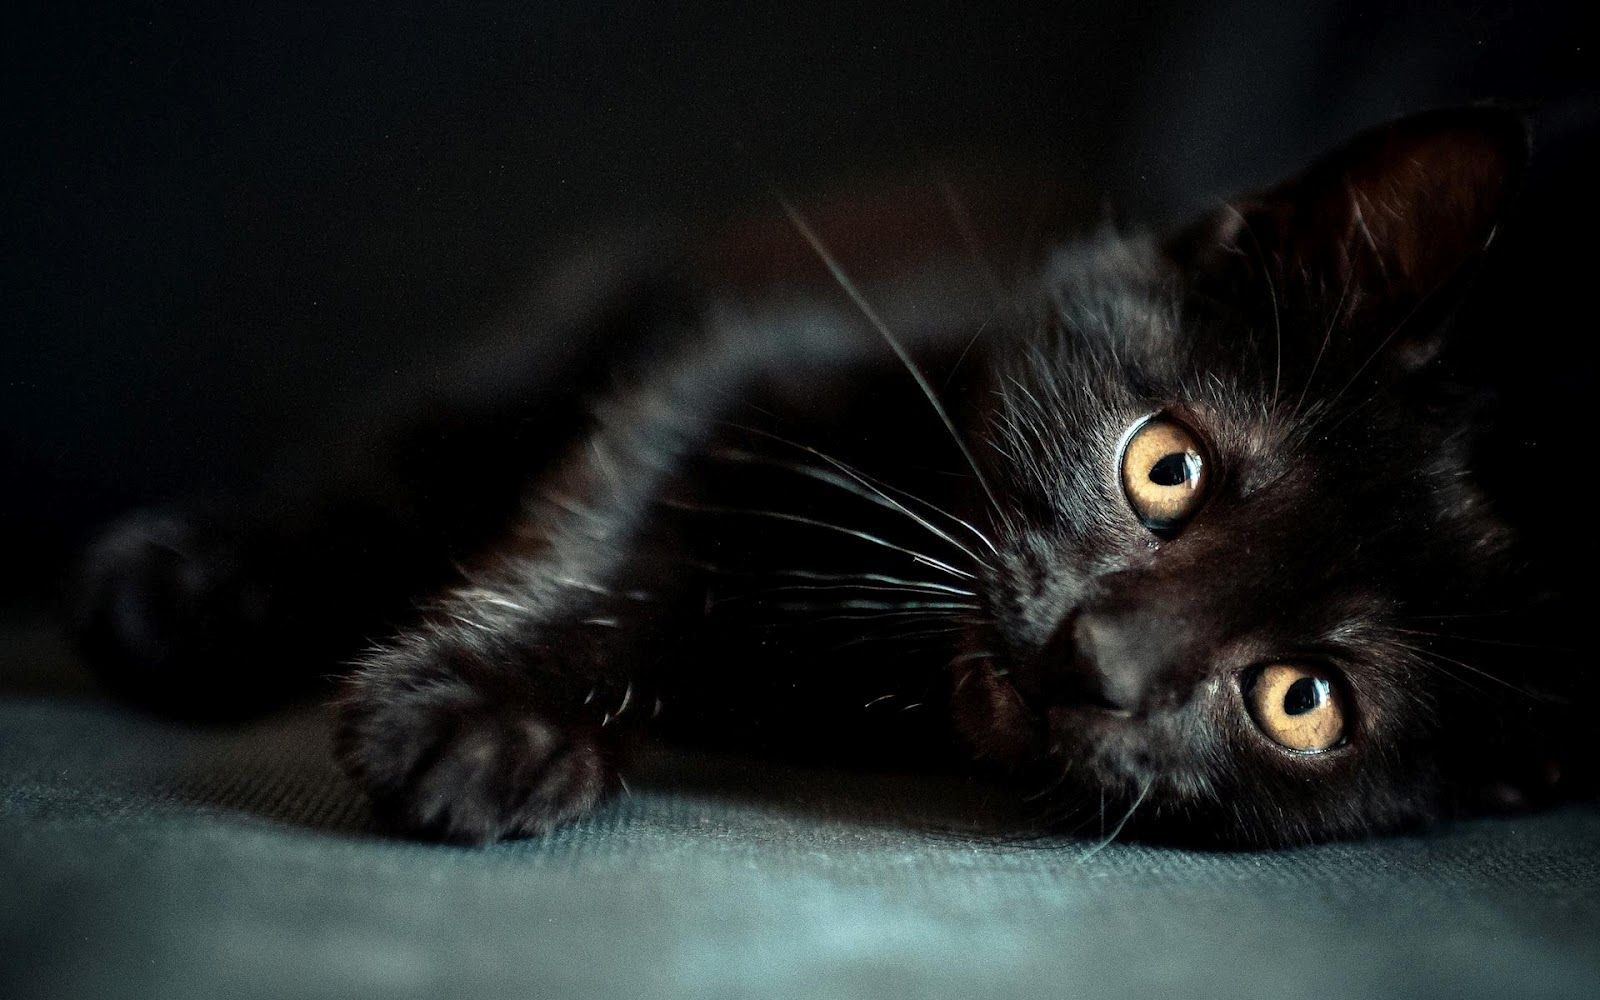 Black Kitten Wallpapers Top Free Black Kitten Backgrounds Wallpaperaccess